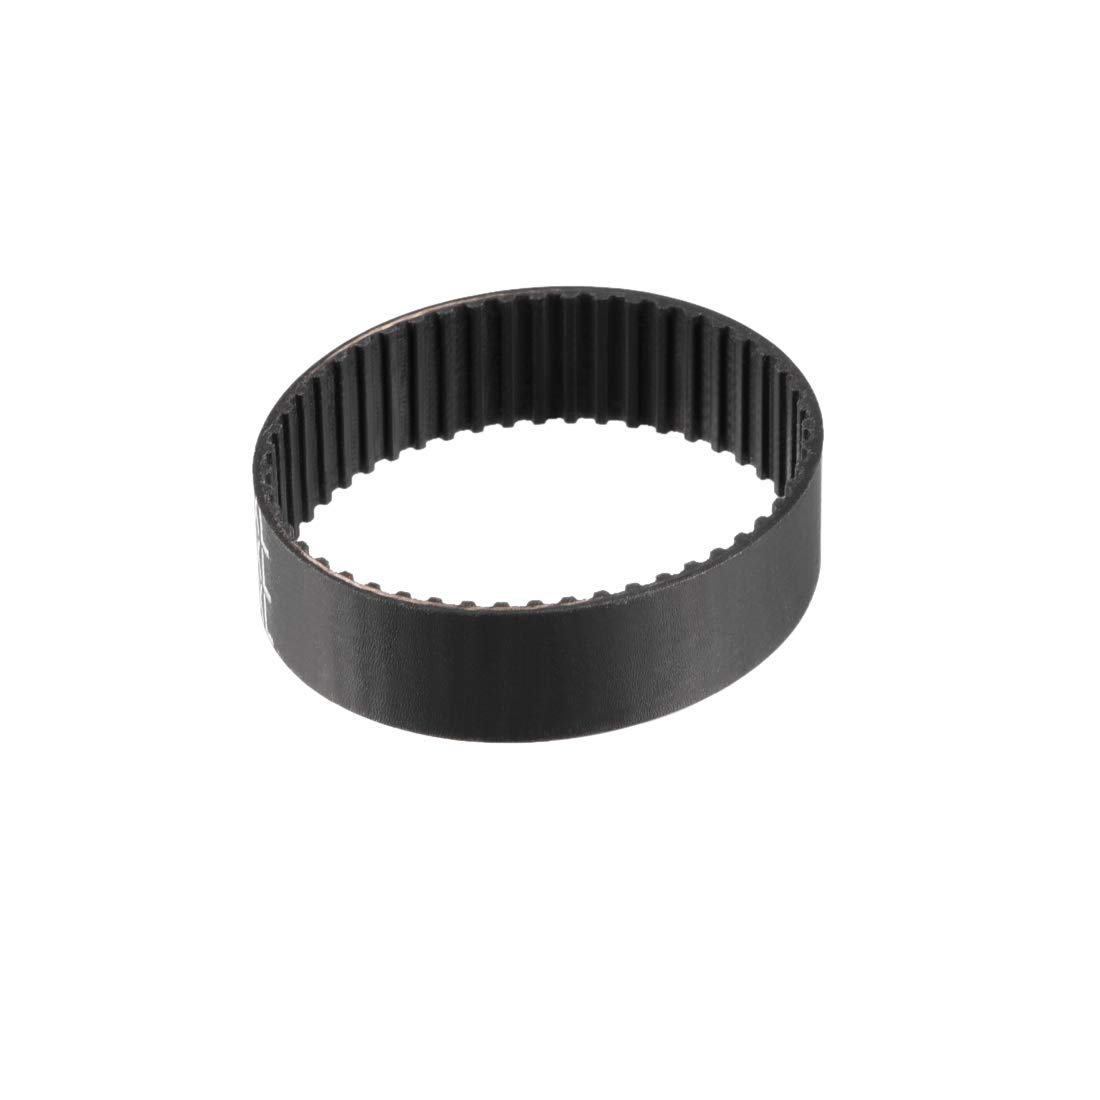 Cheap Natural Rubber Trapezoid Tooth Timing Belt Find Pulley Tool Get Quotations Uxcell 40mxl Synchronous Closed Loop Tools 10mm Wide